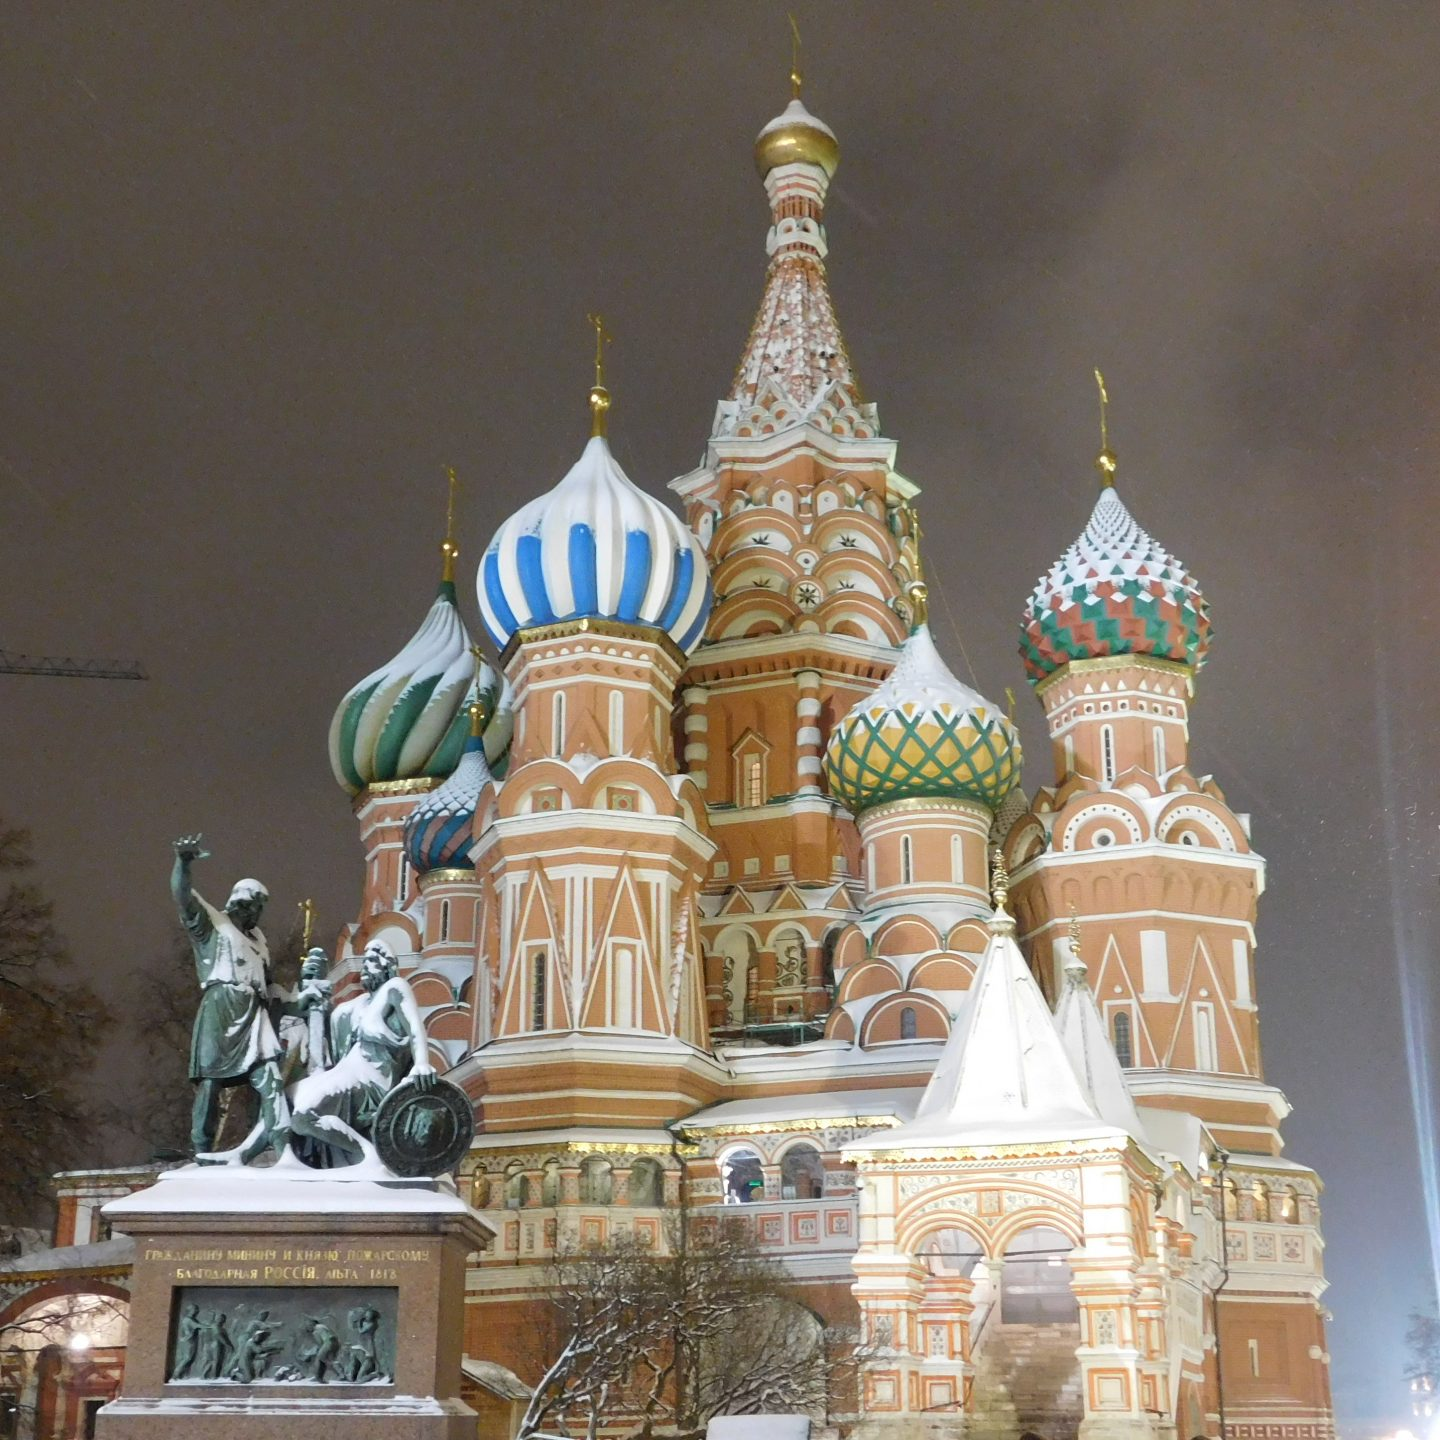 Moscow, 5 Things to Do in wintertime